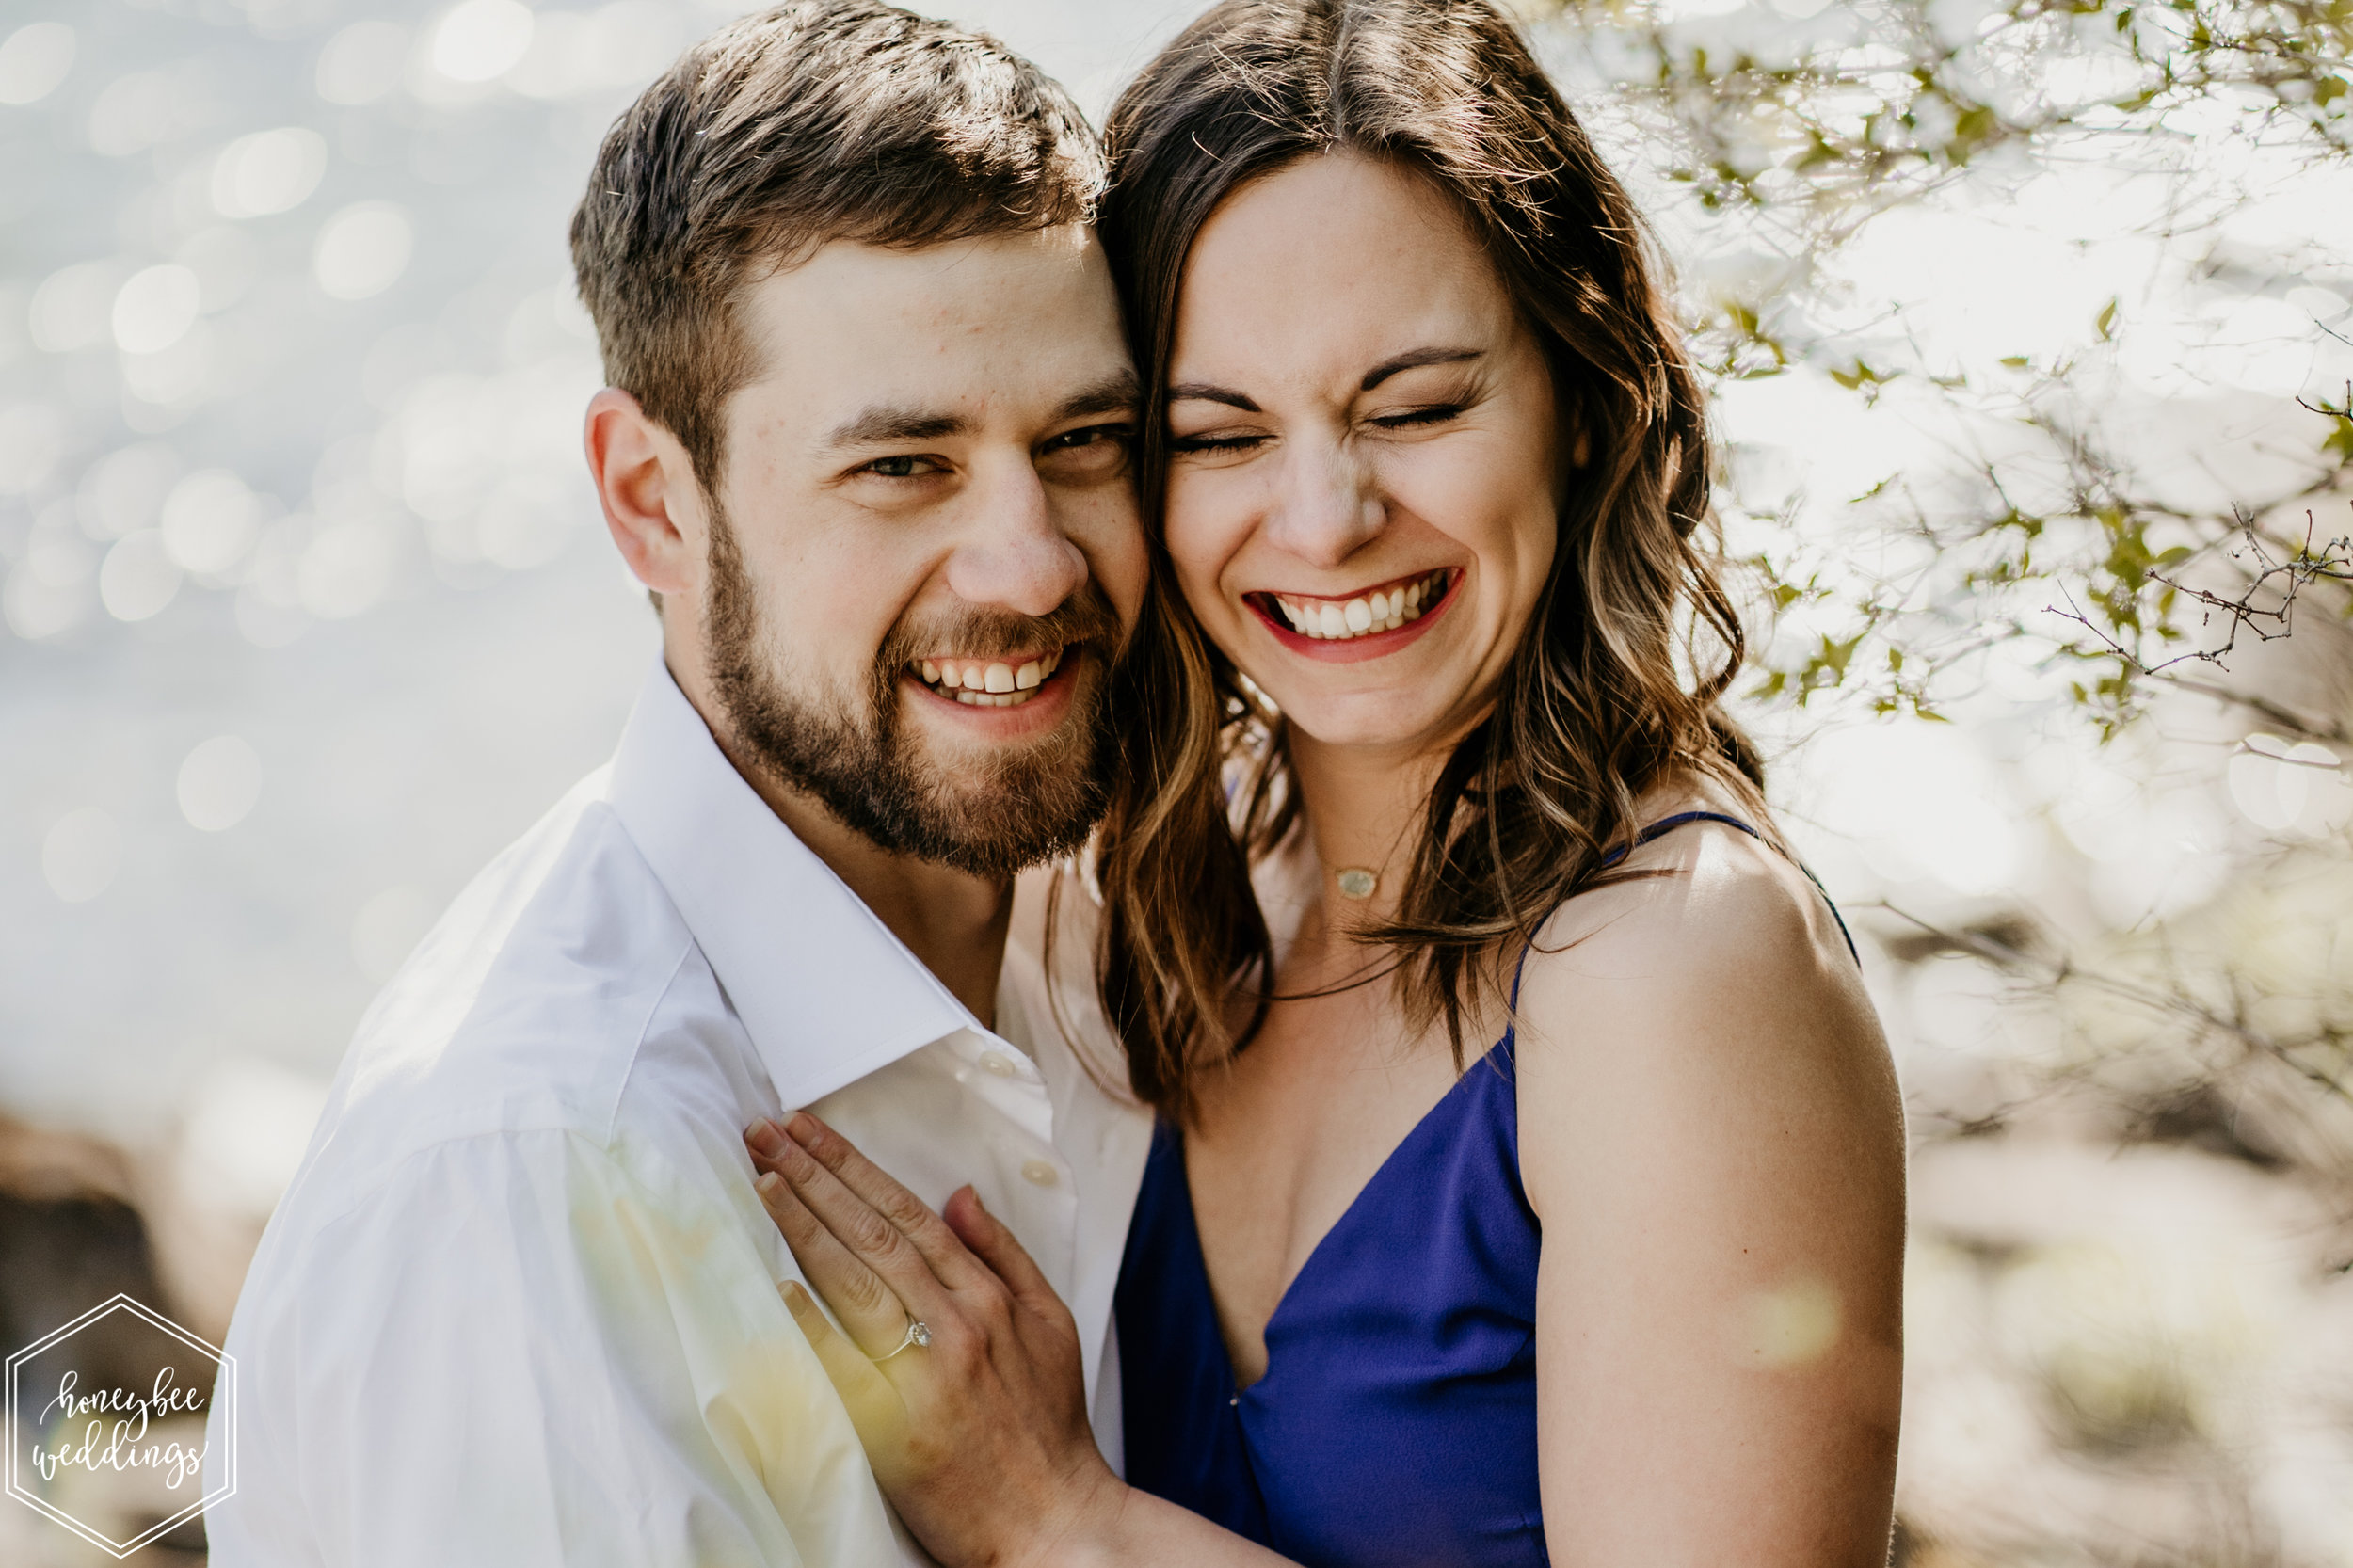 053Montana Wedding Photographer_Polson Engagement Session_Carrie & Matt_Honeybee Weddings_May 11, 2019-137.jpg